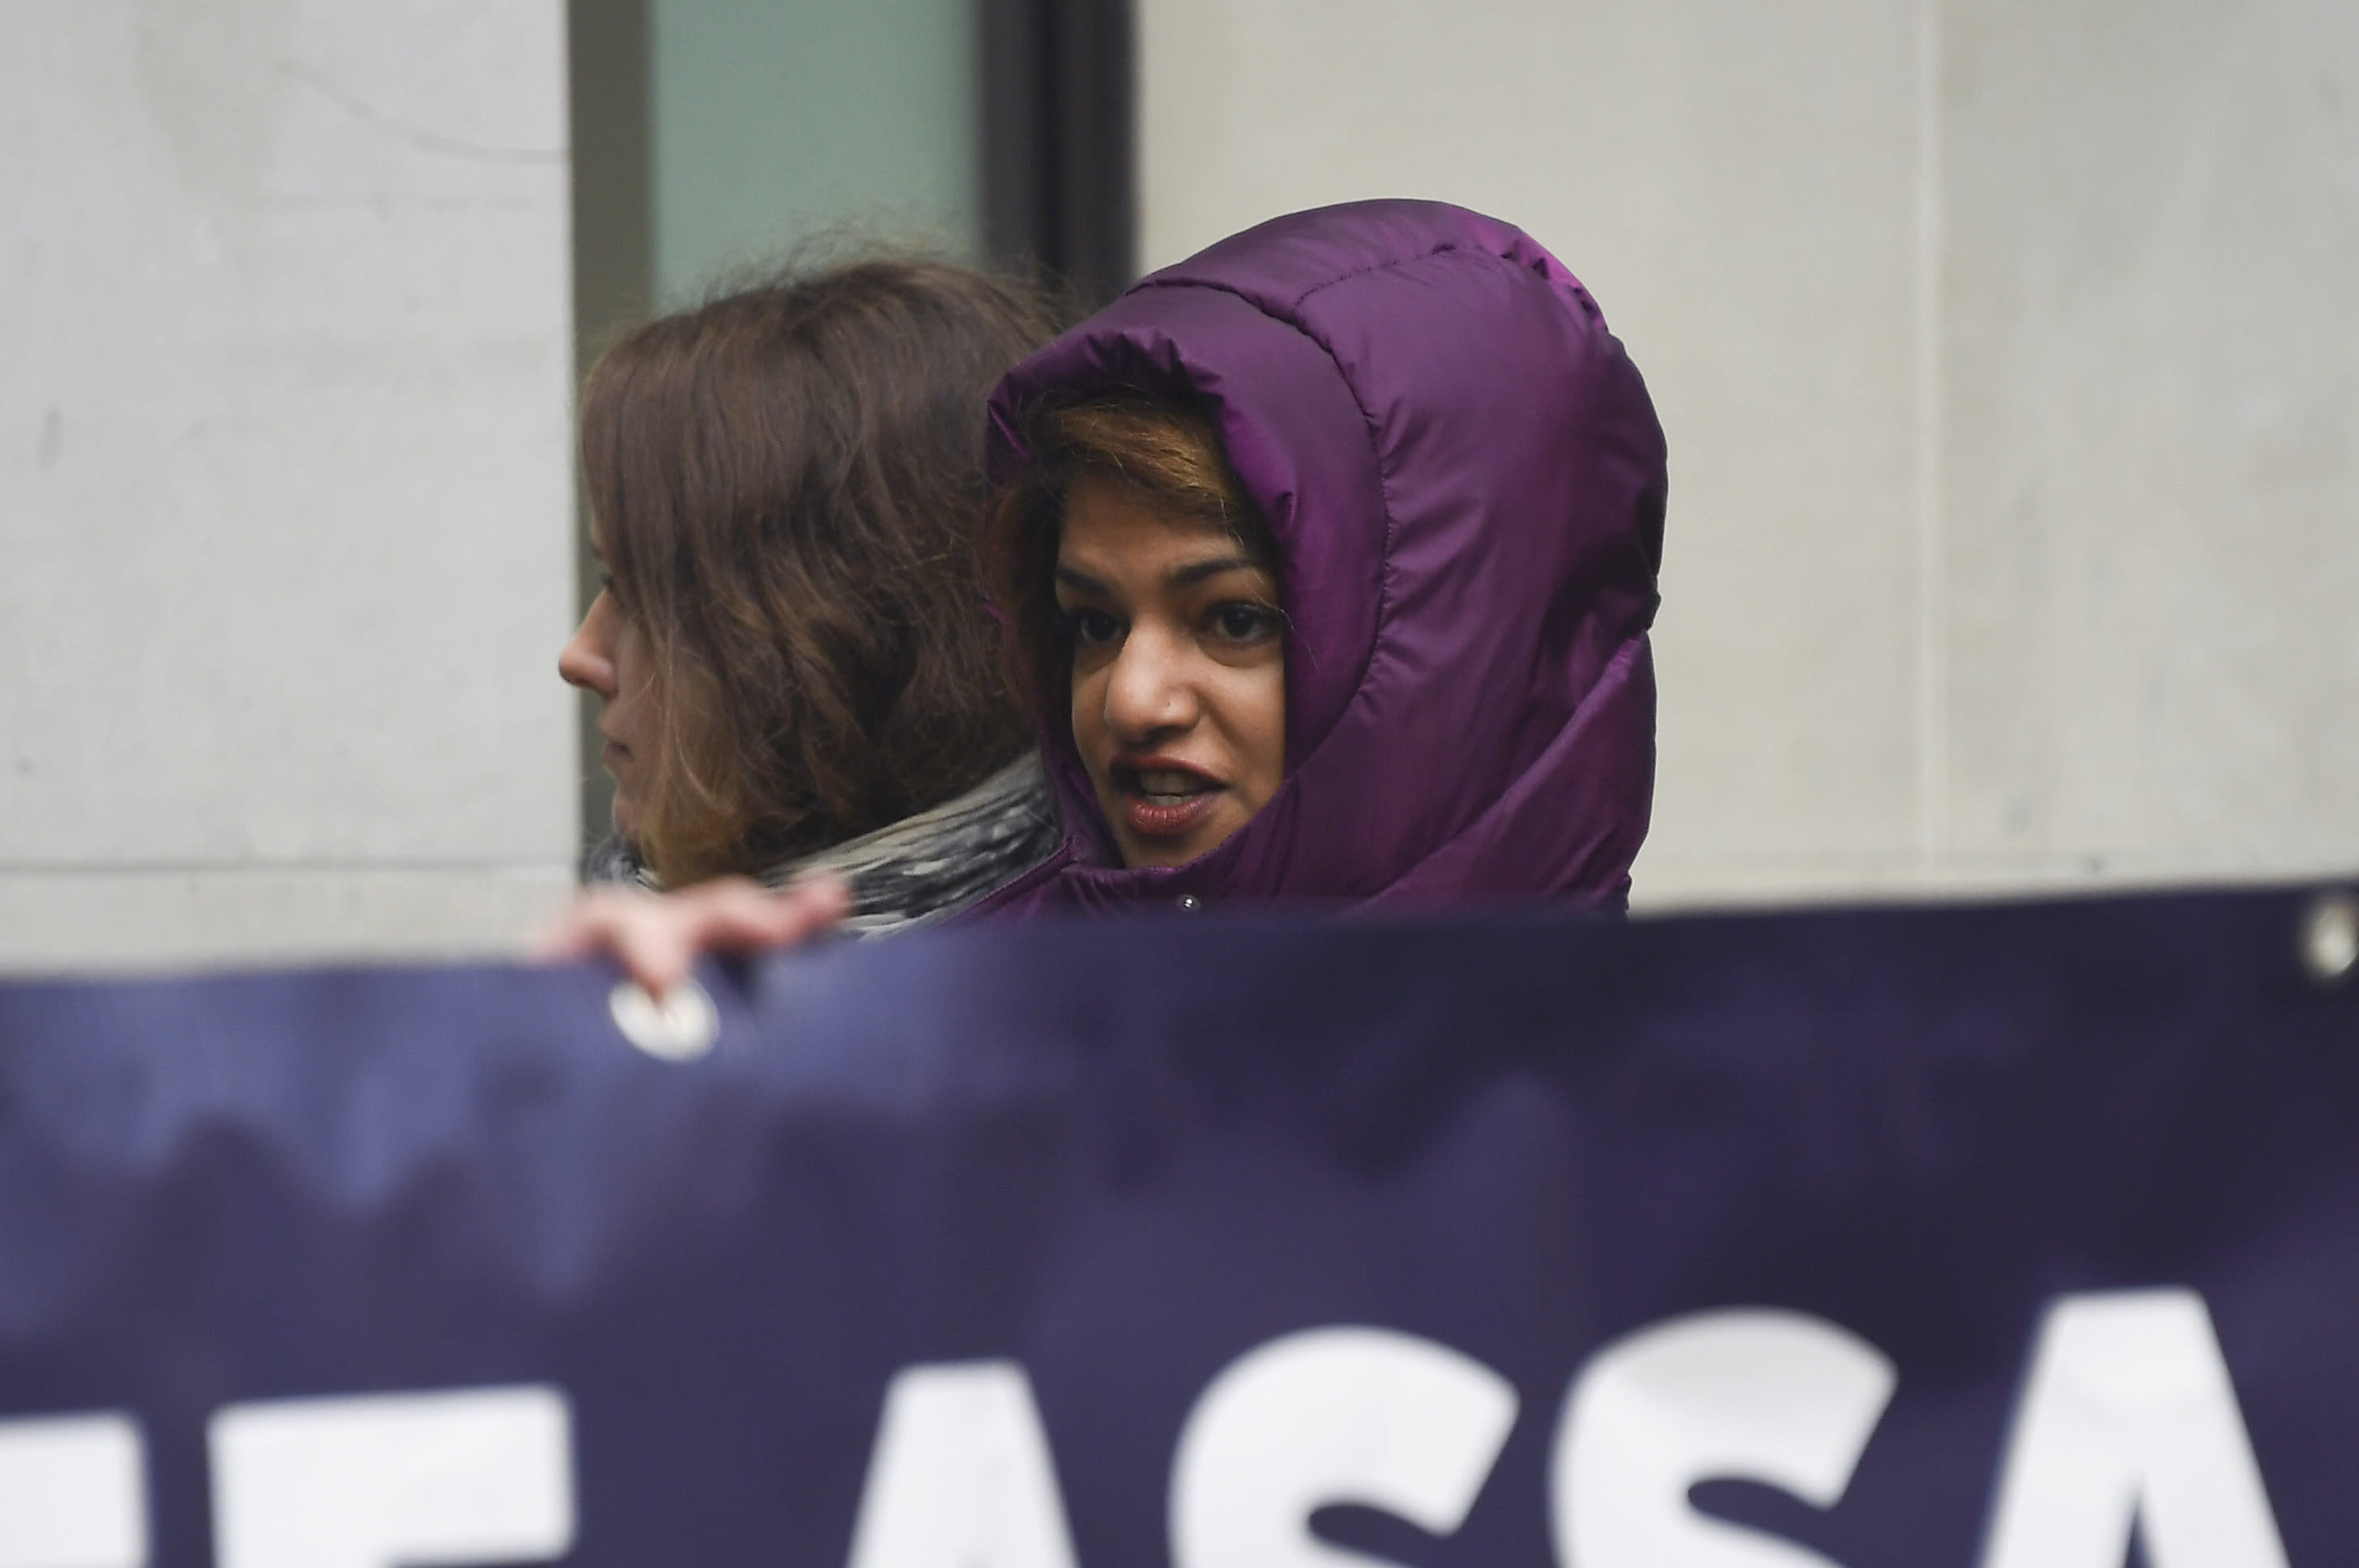 Singer M.I.A joins demonstrators outside Westminster Magistrates Court in support of WikiLeaks founder Julian Assange, who is due to appear for an administrative hearing, in London, Monday, Jan. 13, 2020. Assange remains in custody at London's Belmarsh Prison while he fights extradition (AP Photo/Alberto Pezzali)